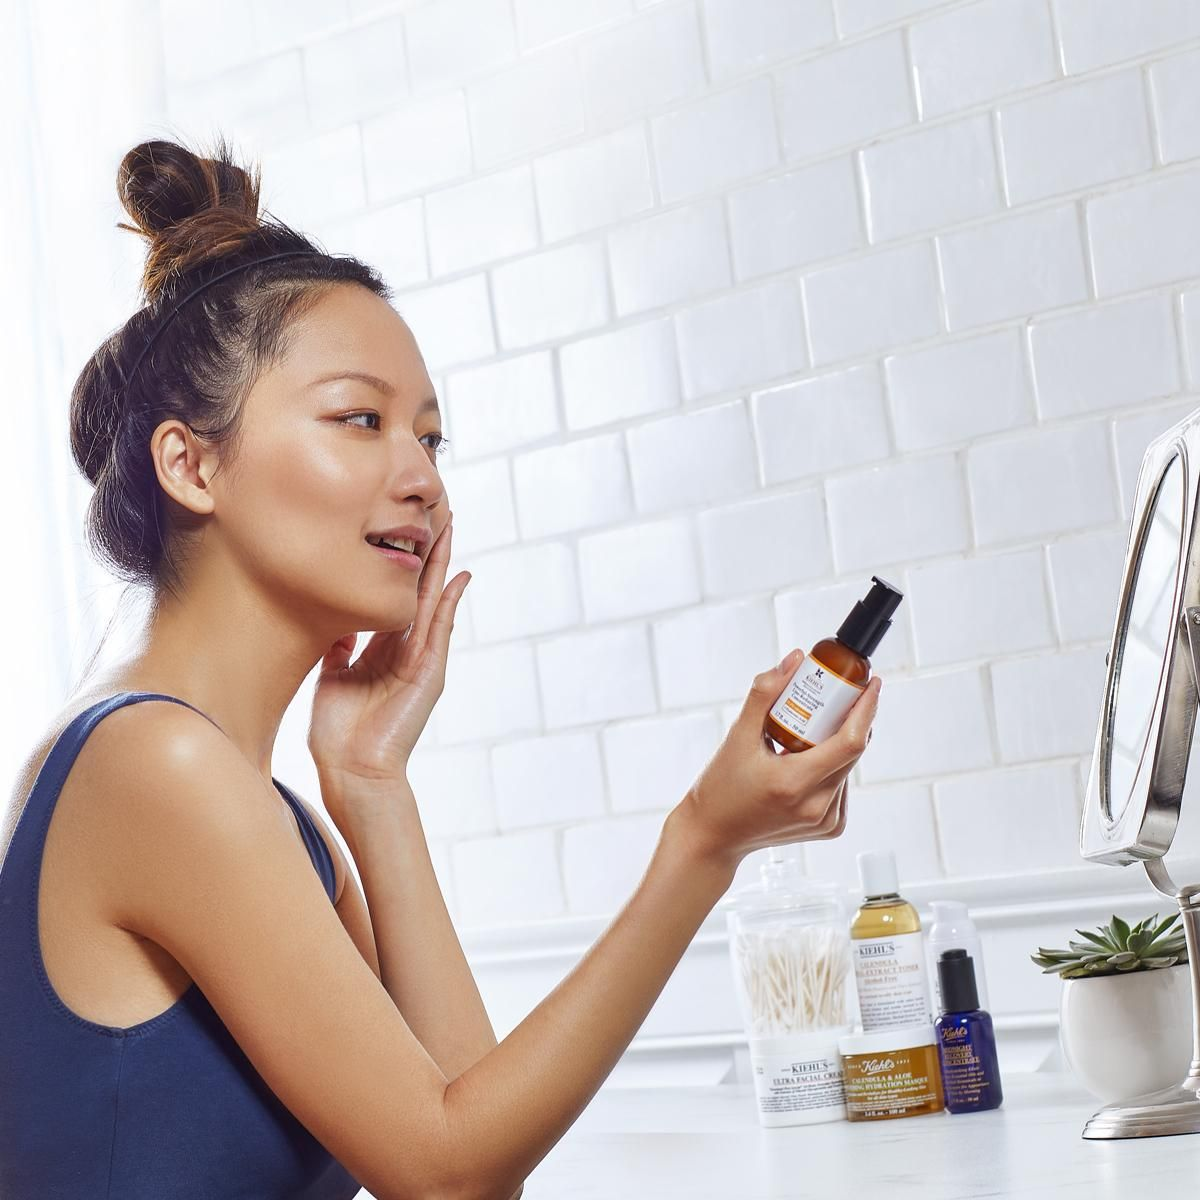 Apply a Vitamin C serum to nourish skin with healthy antioxidants. Safe to use for morning and night, Kiehl's Powerful-Strength Line-Reducing Concentrate improves all-over skin health with 12.5% Vitamin C.